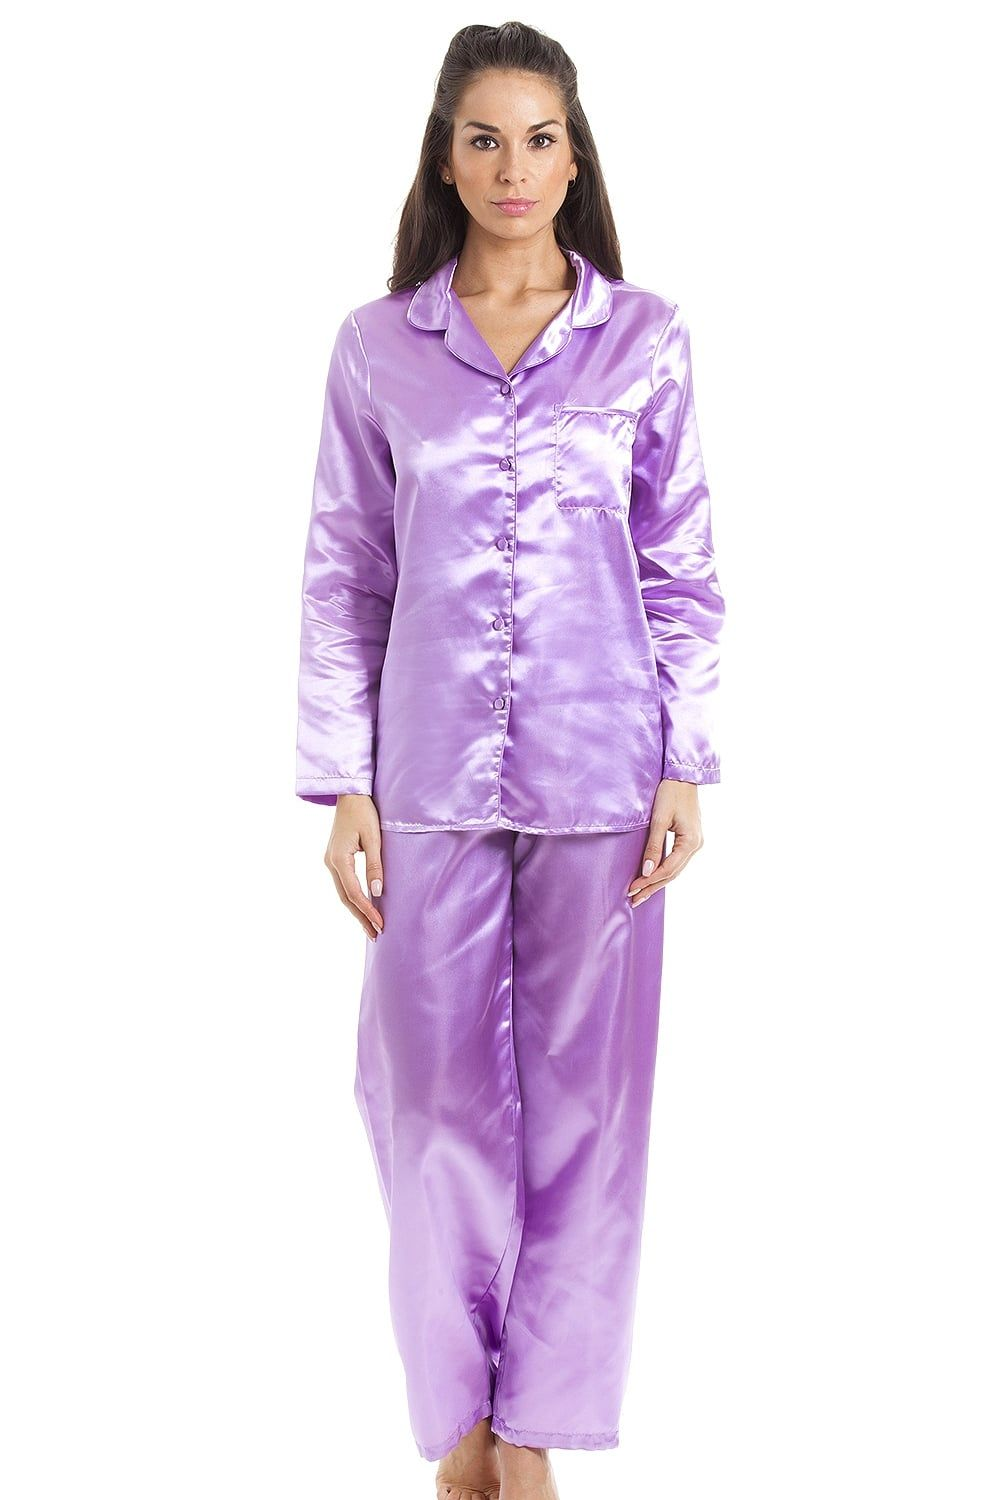 New Camille Ladies Lilac Luxury Satin Silky Long Pyjamas Lilac Sizes 18 20